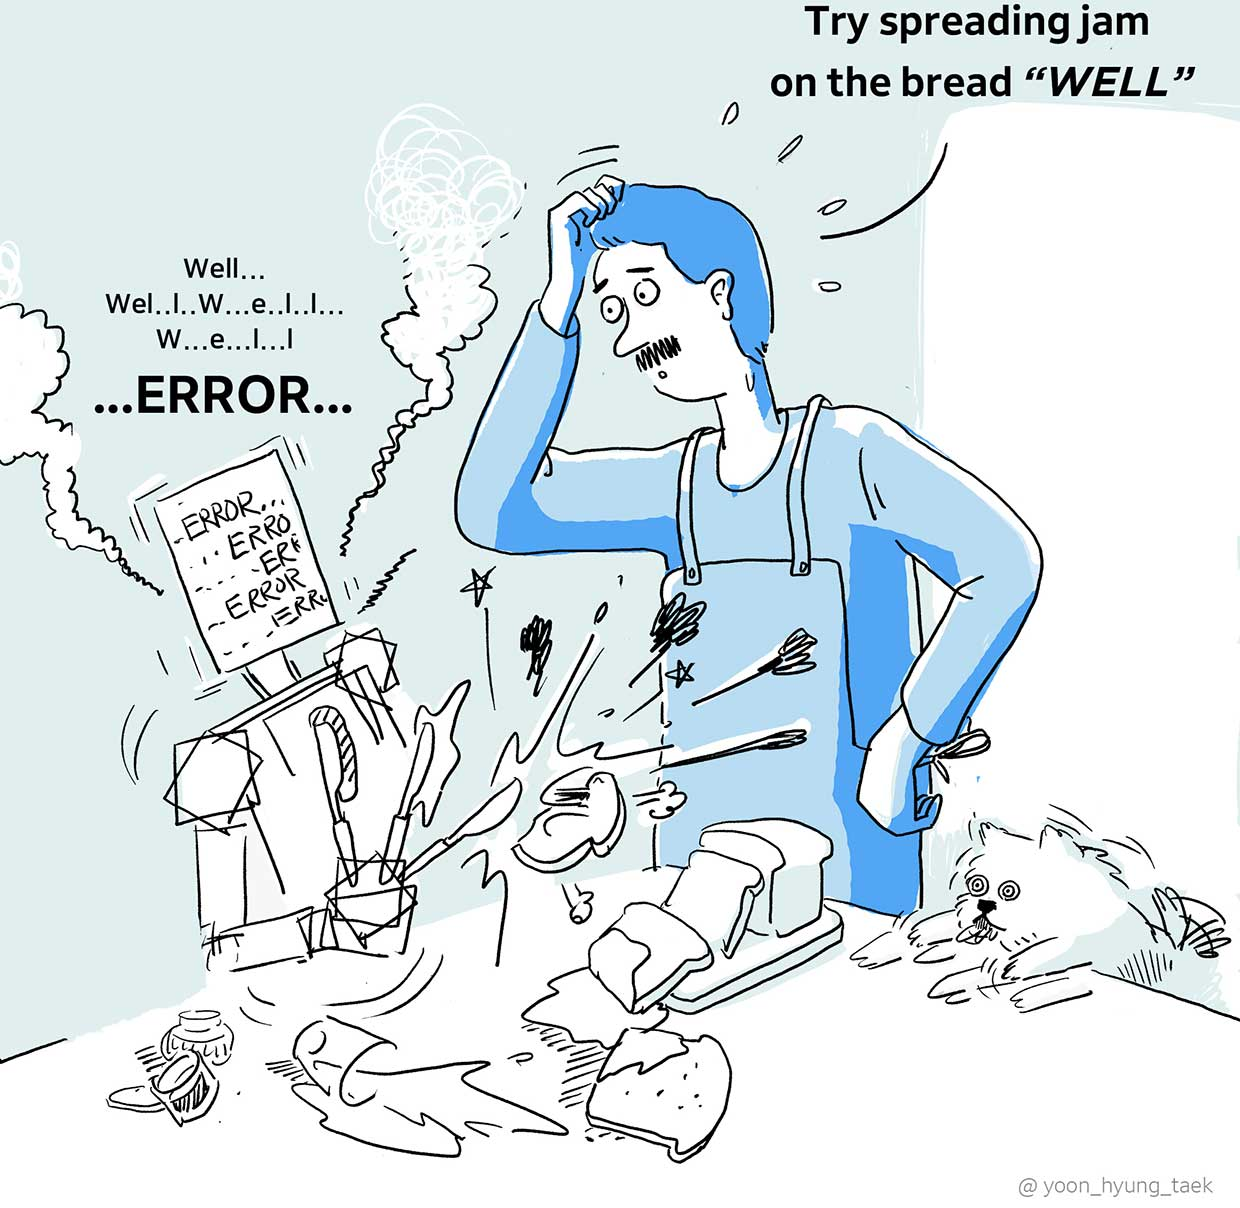 illustration of a man with a robot trying to spread jam on bread well